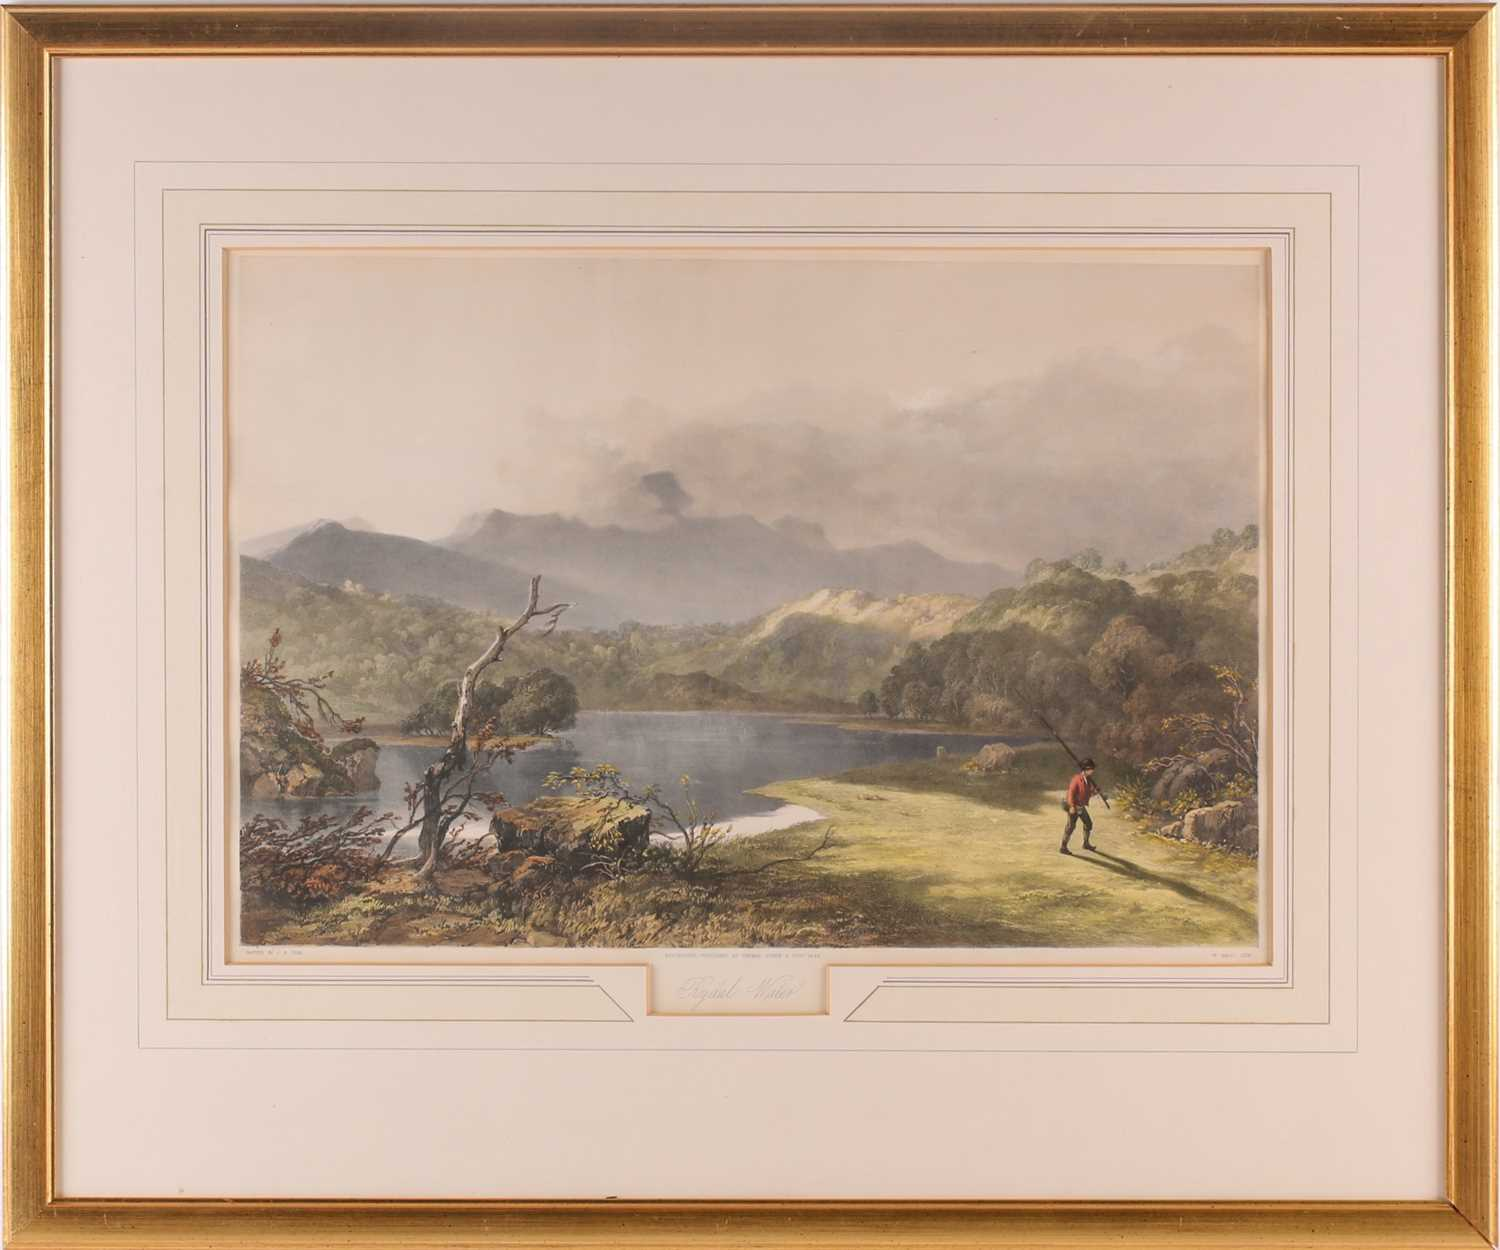 Gauci after J B Pyne, Skiddaw, Buttermere, The Vales of Emmerdale and Buttermere, The Rydal Water, - Image 9 of 13